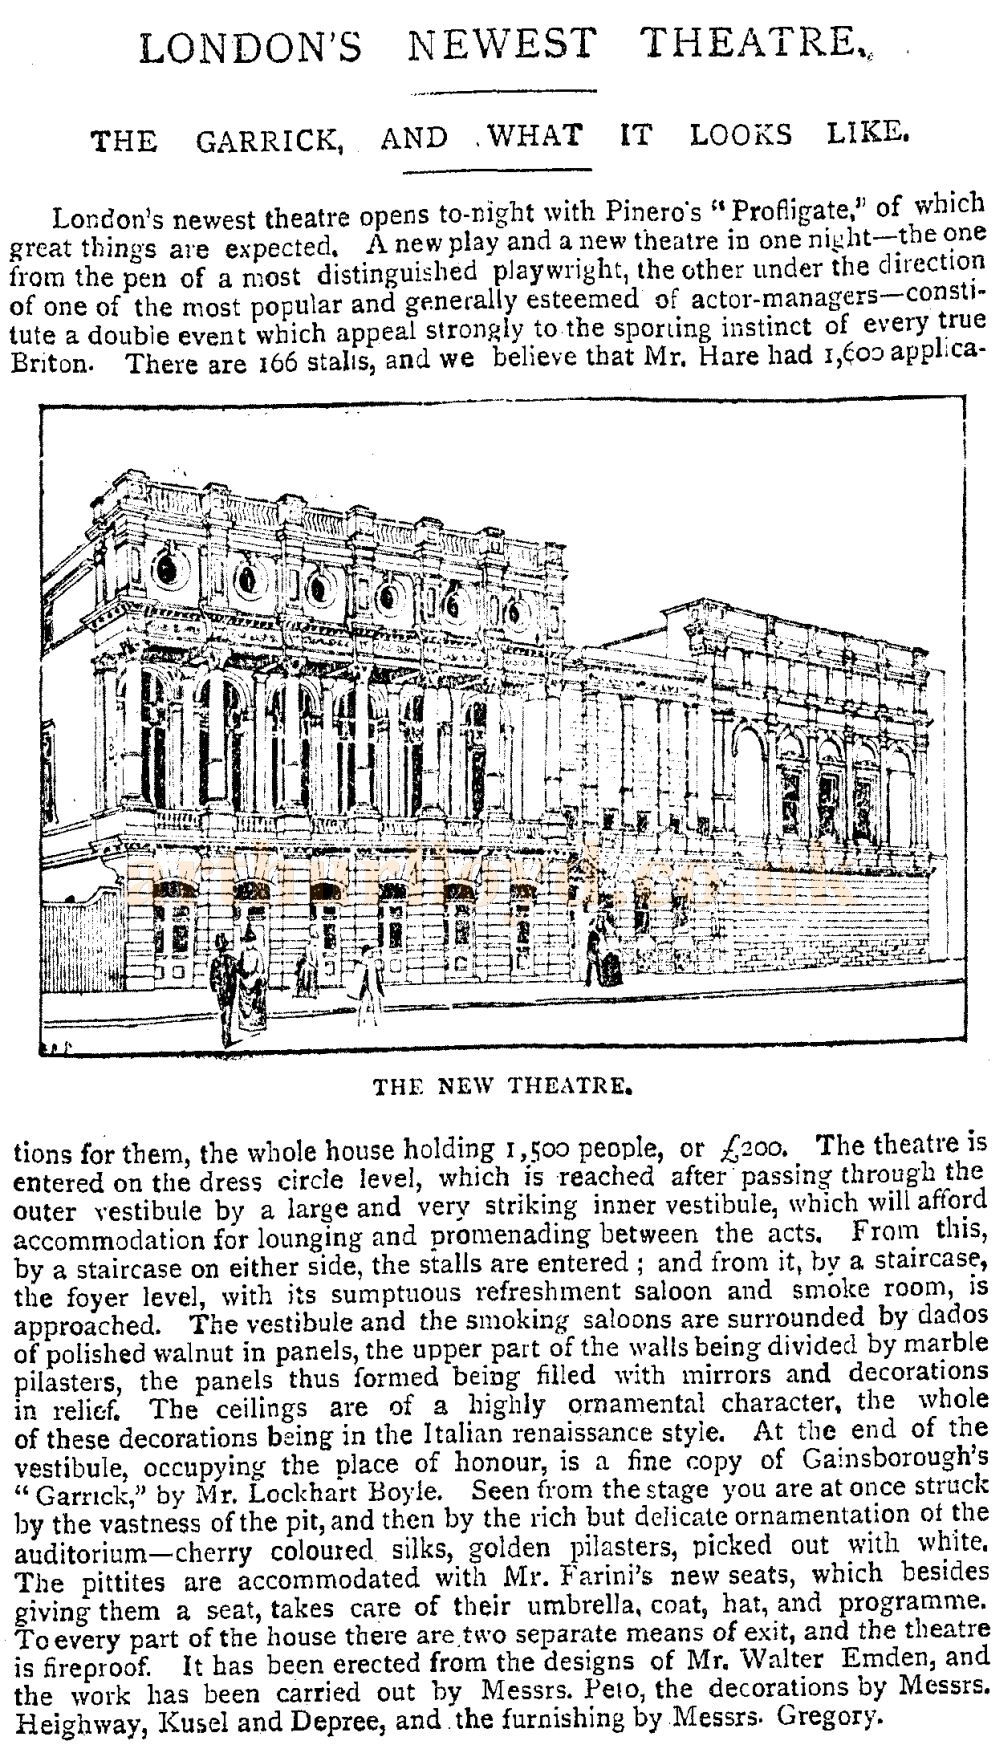 A Sketch and Description of the newly opened Garrick Theatre - From the Pall Mall Gazette, 24th April 1889.